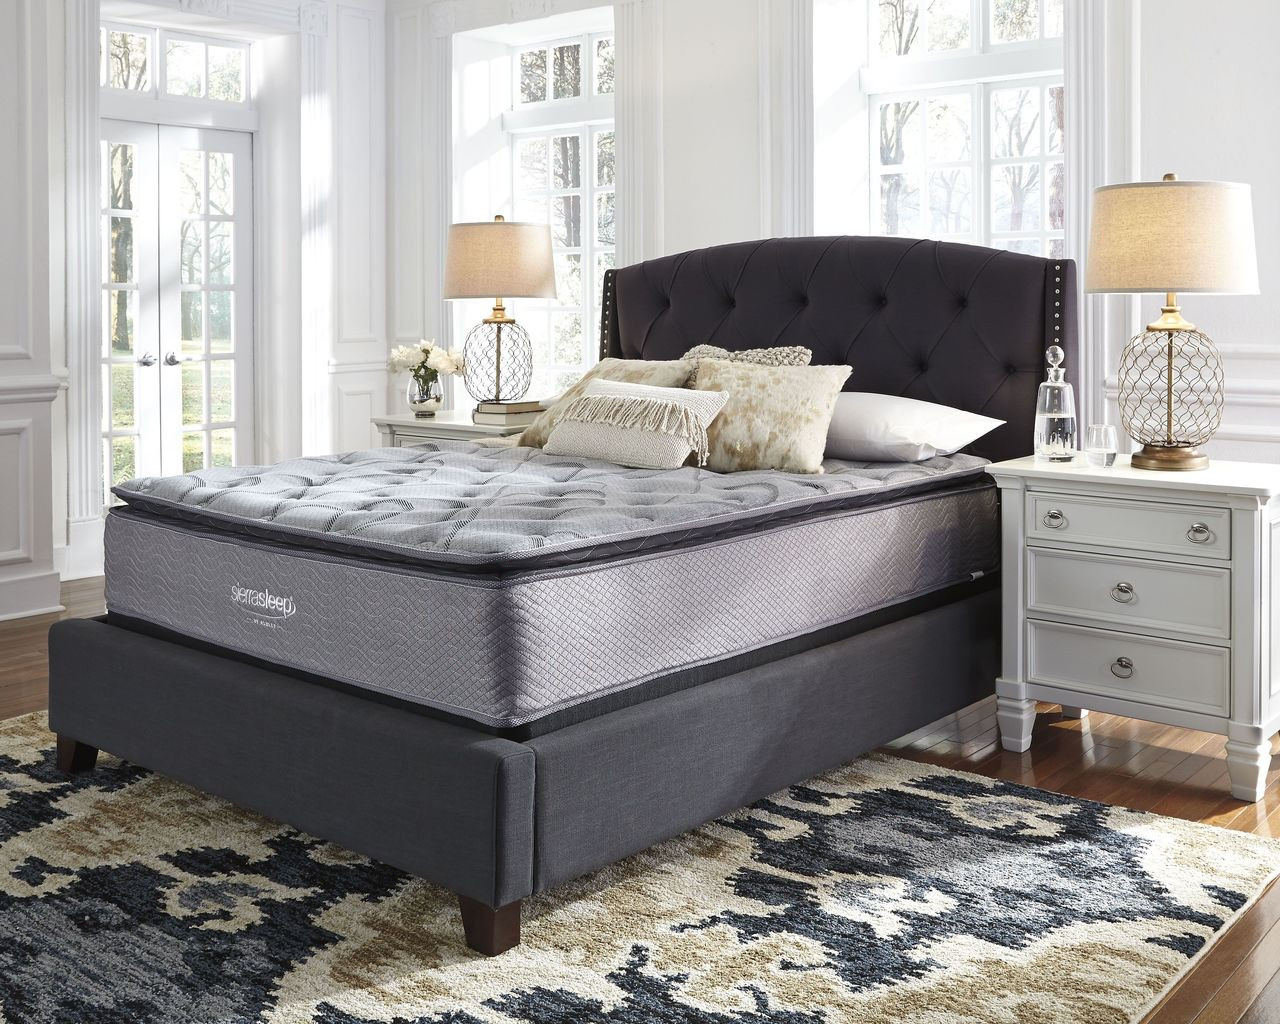 The Curacao White Queen Mattress Availible At Discount Furniture Center In South Hill And